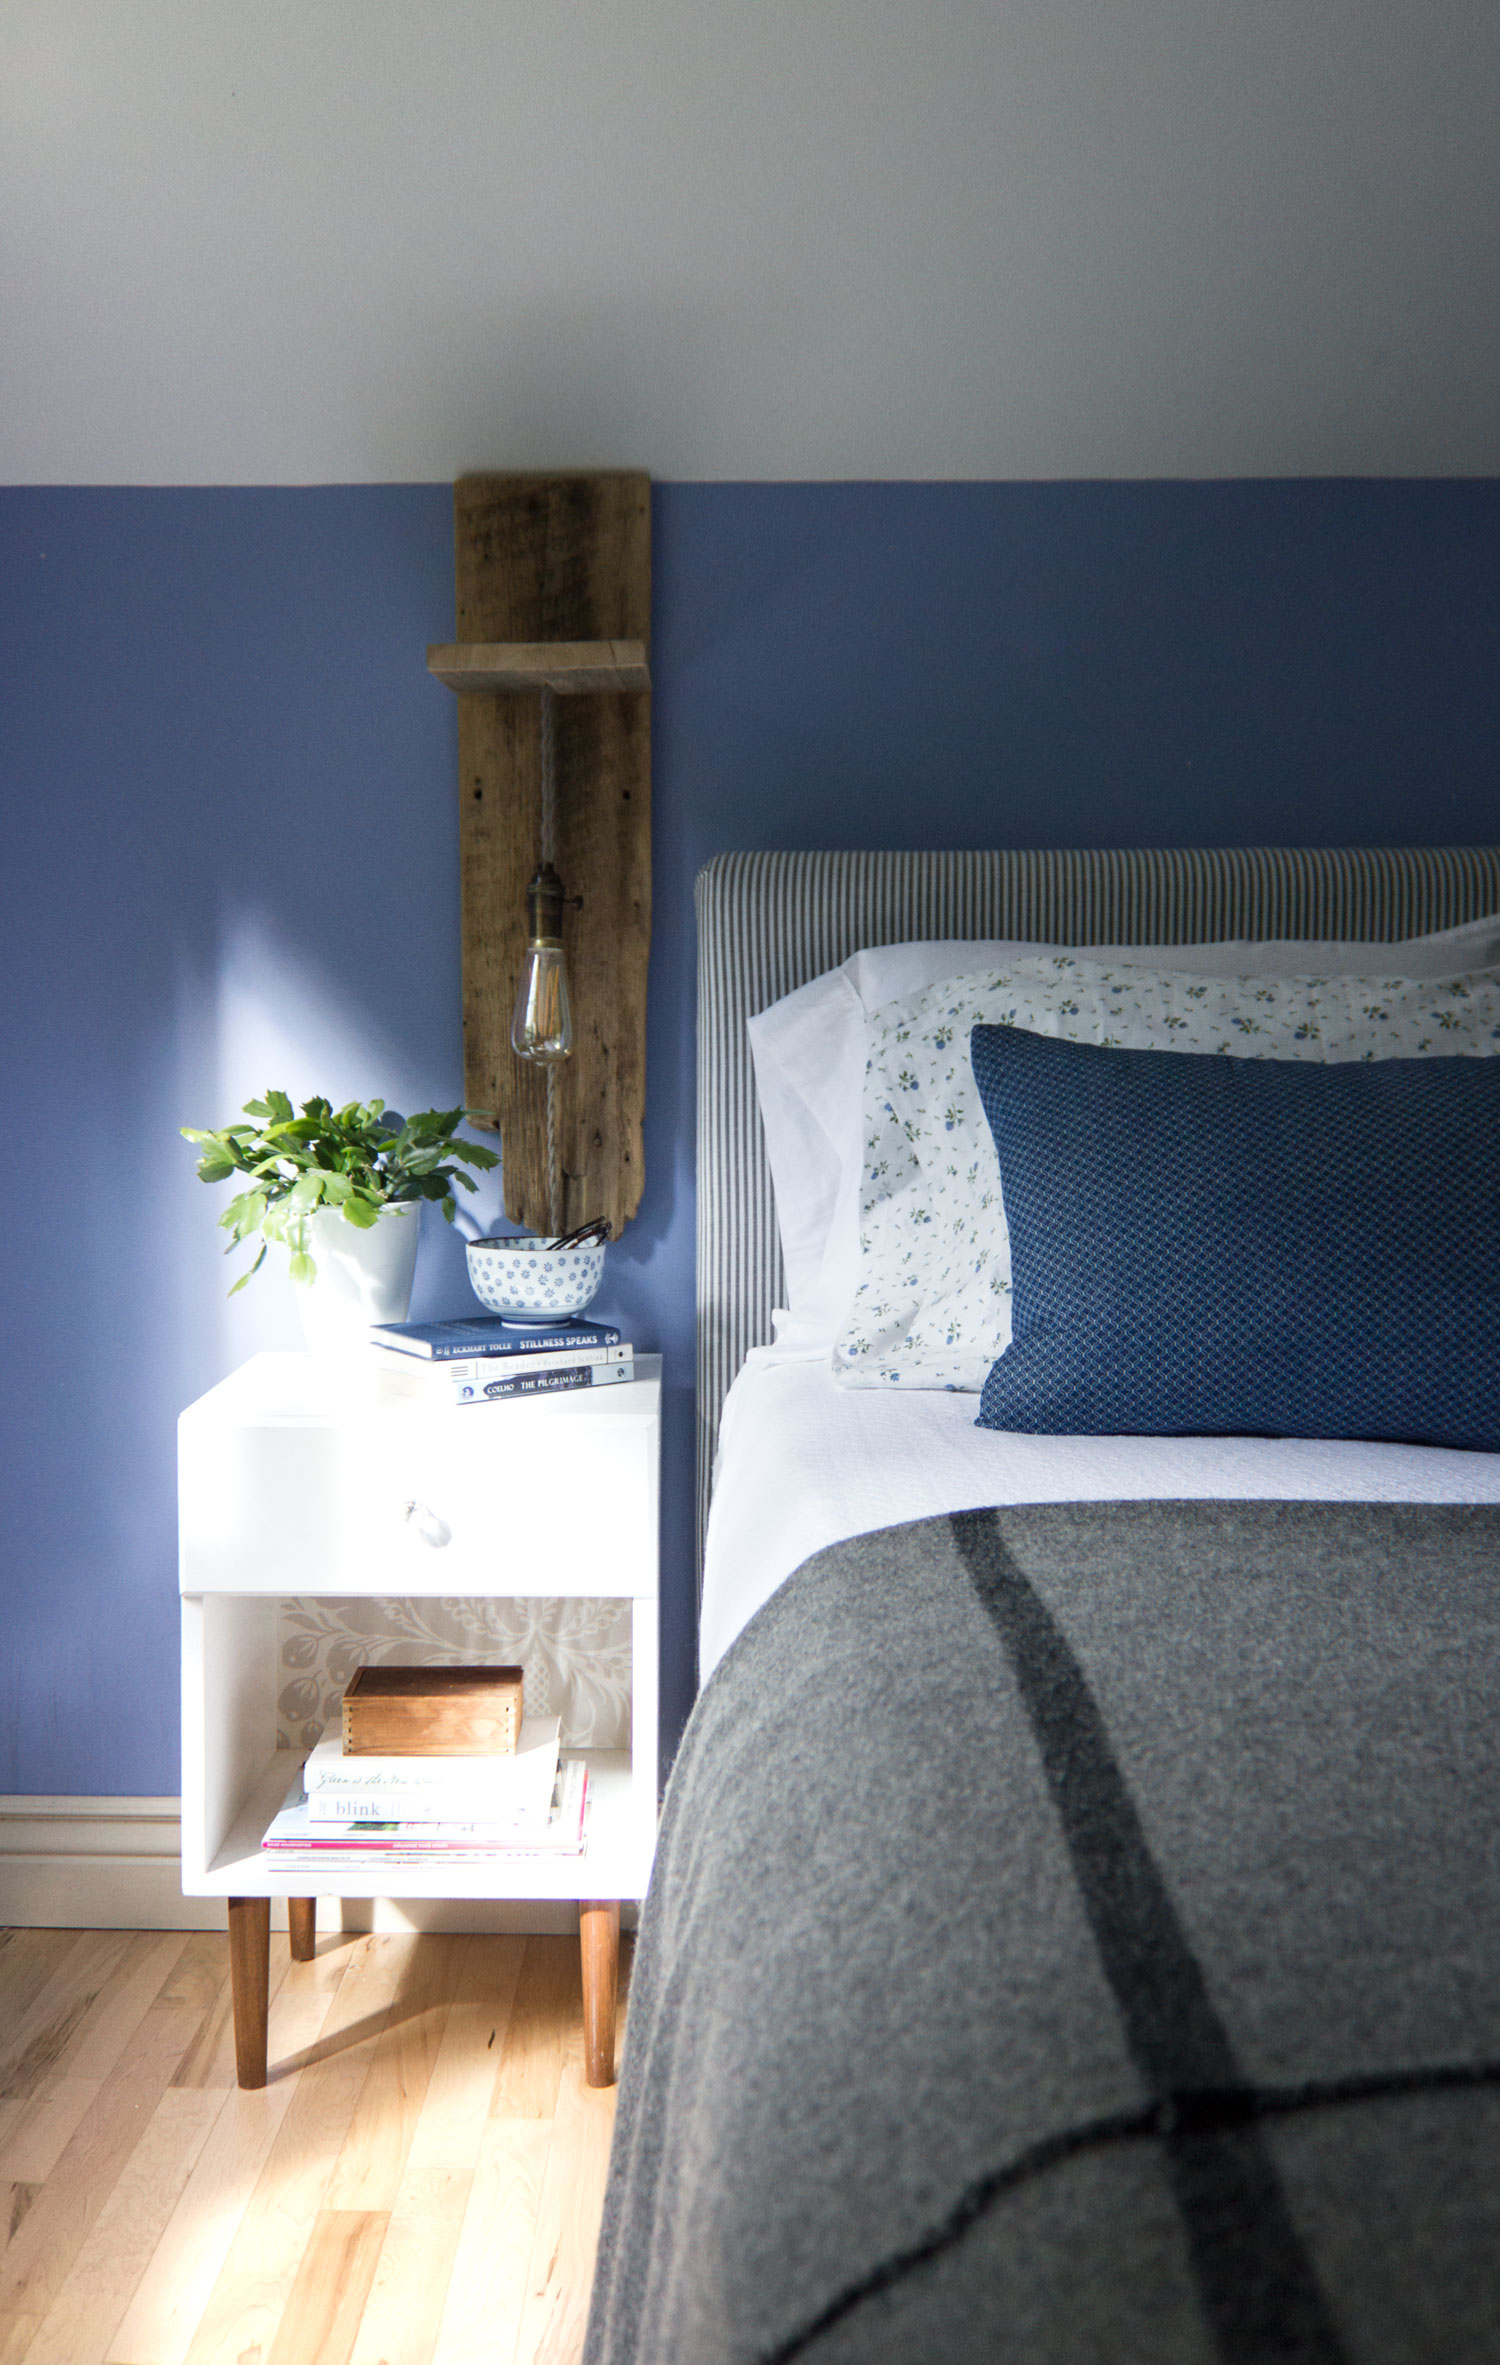 3 decorating rules for any home - simple and minimal